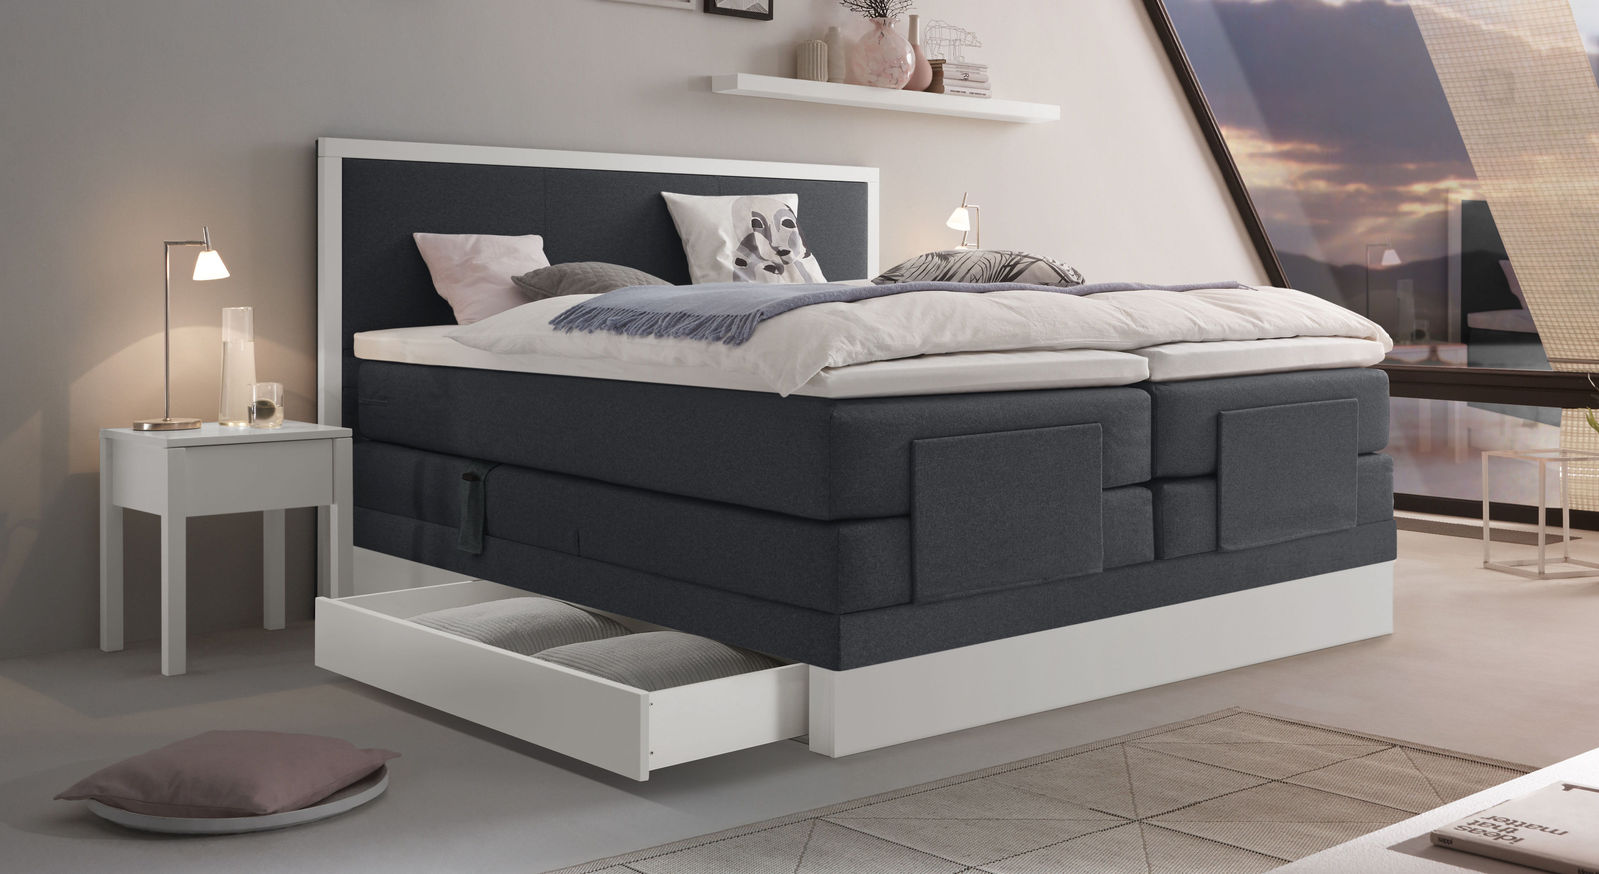 elektrisch verstellbares boxspringbett mit schubkasten pando. Black Bedroom Furniture Sets. Home Design Ideas